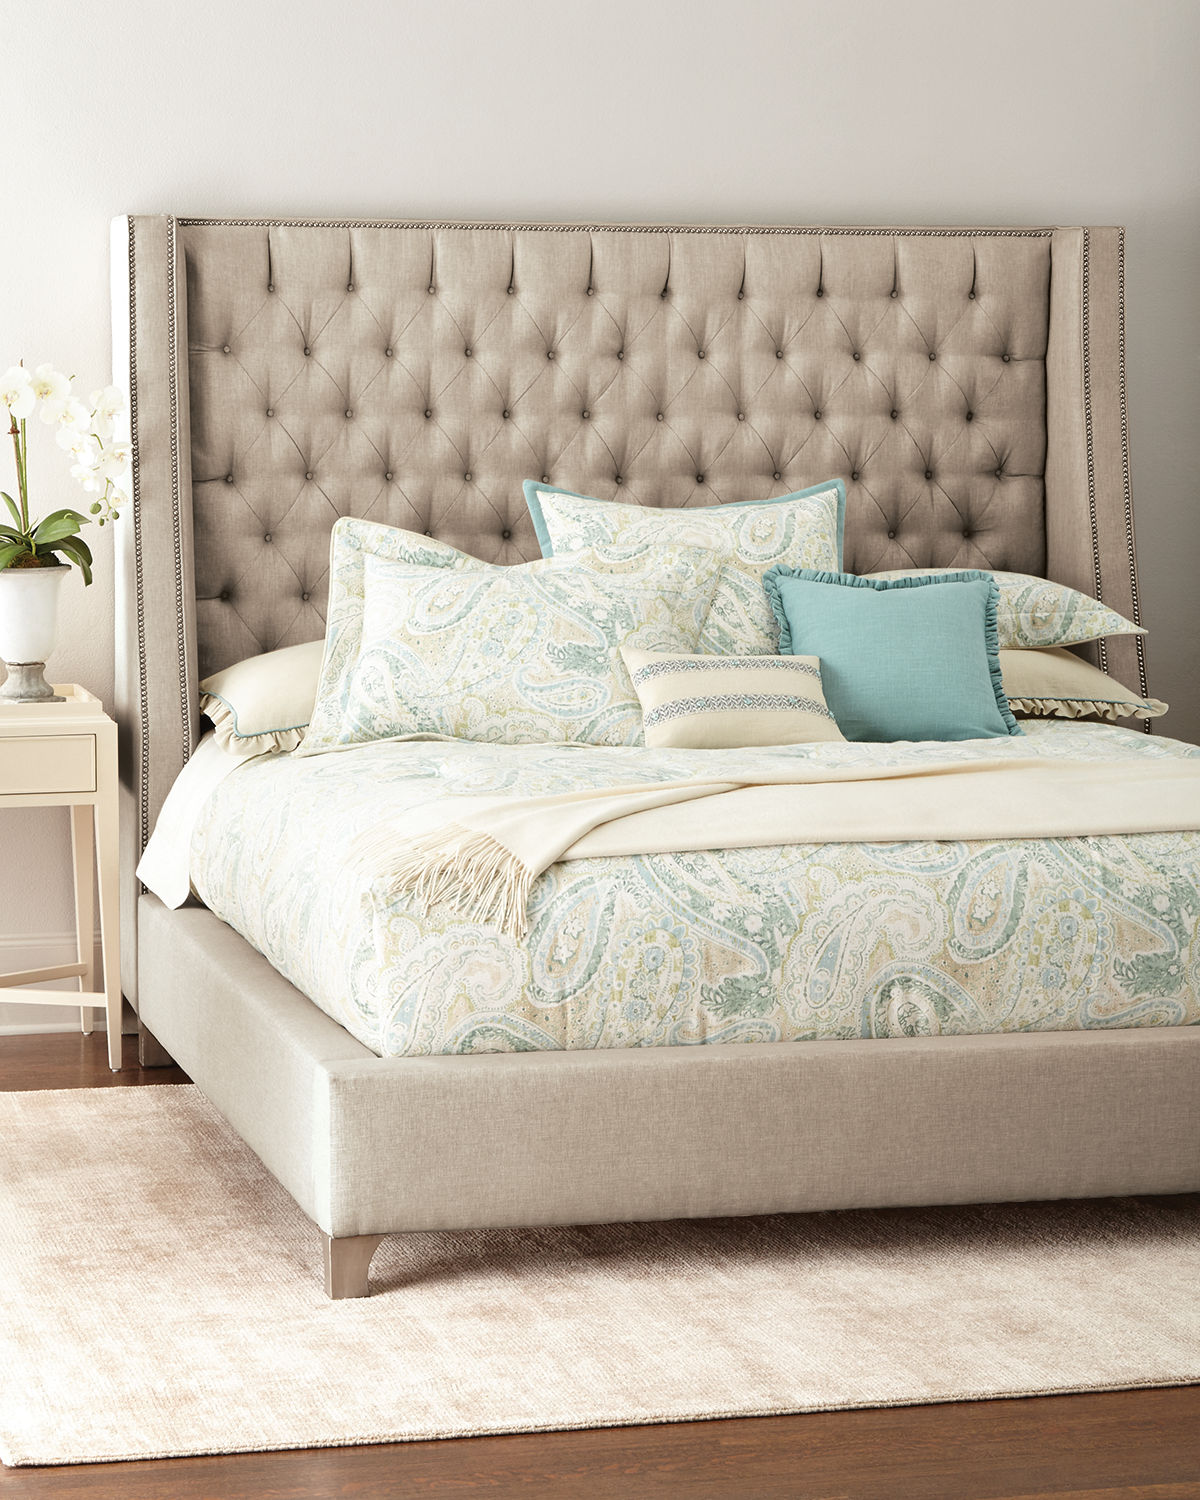 Missy Tufted Queen Bed